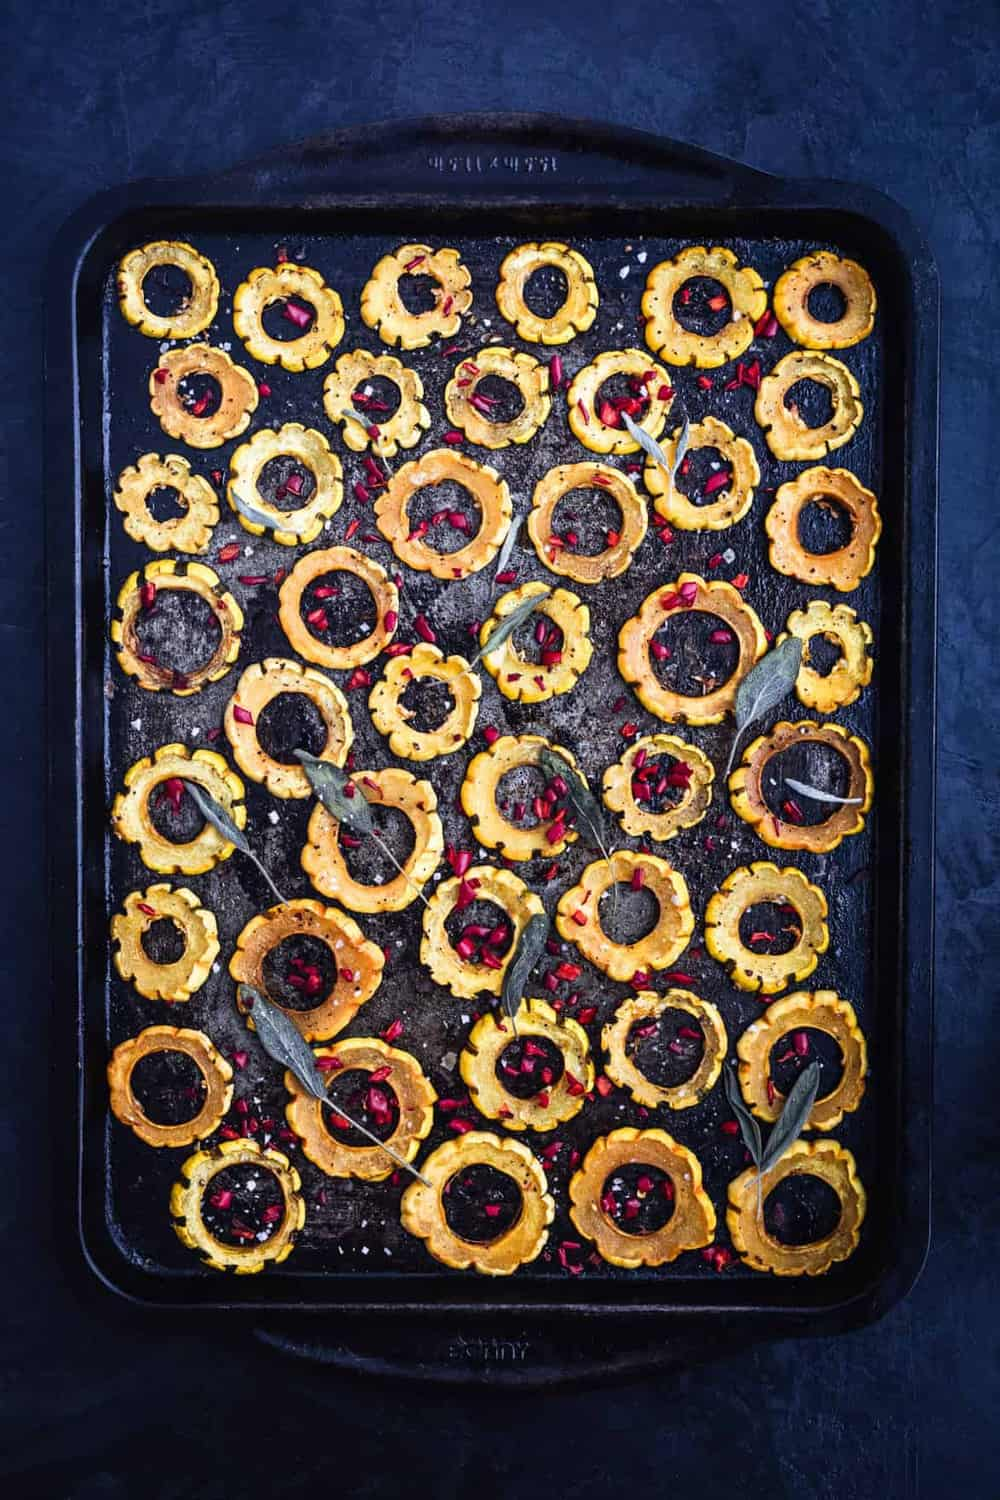 Sliced roasted squash rings on baking sheet, can see entire sheet, topped with fresh sage leaves. Pre Oven.